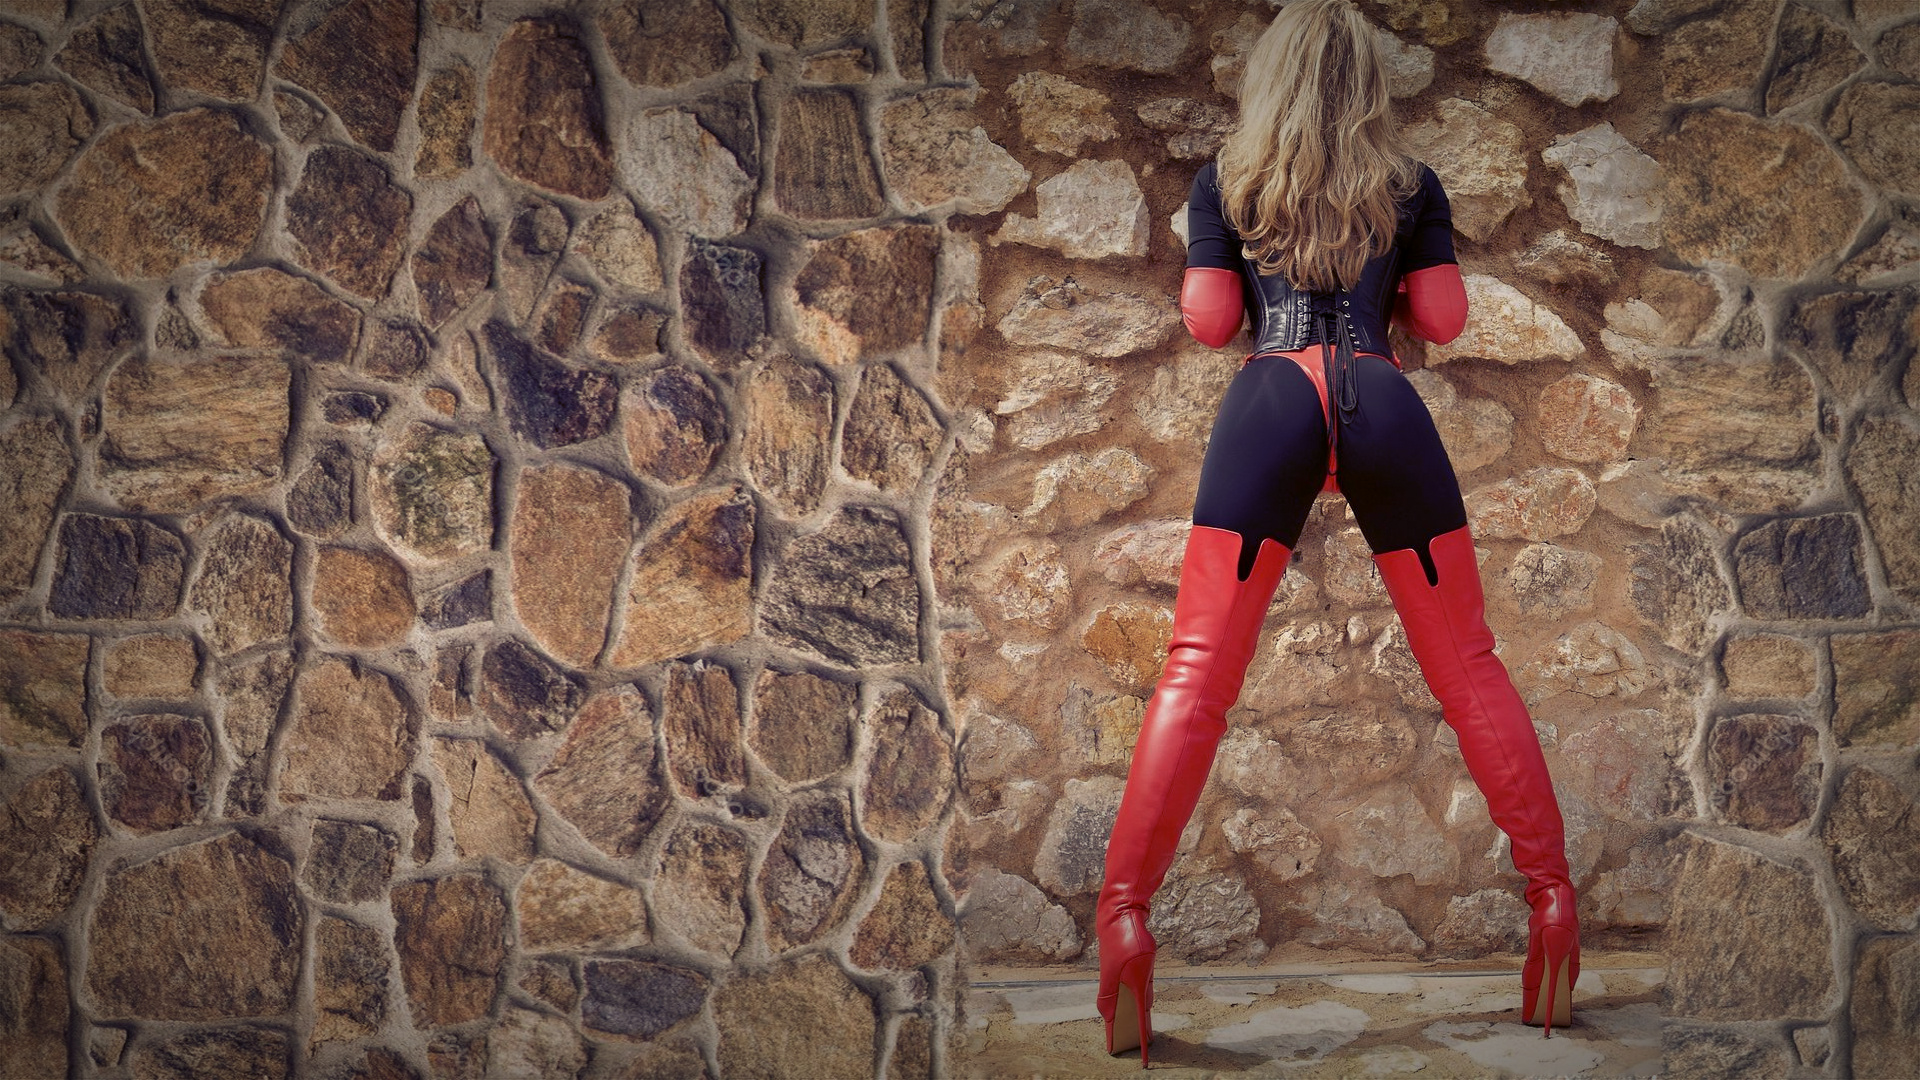 People 1920x1080 blonde women boots corset leggings thigh high boots high heeled boots